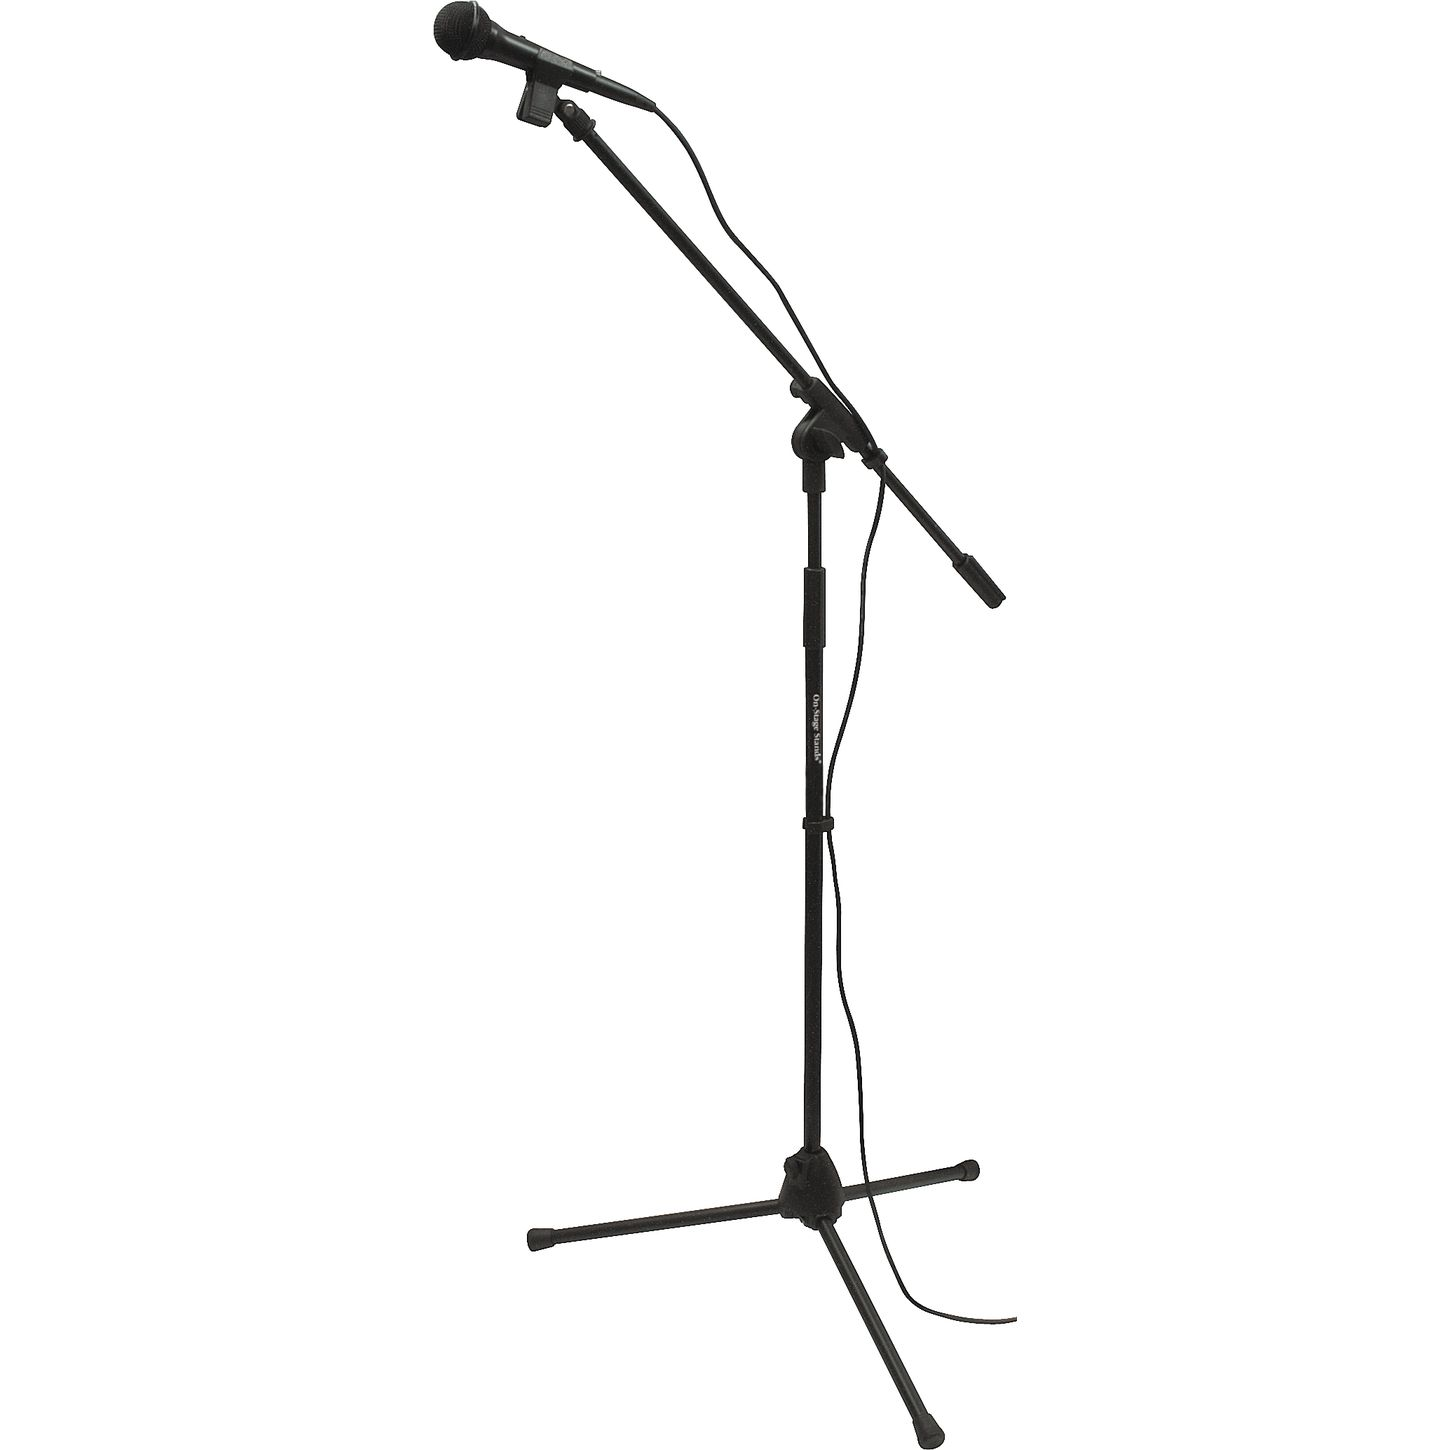 Microphone stand clipart clipart free download Microphone Stand Png - Viewing | Clipart Panda - Free Clipart Images clipart free download